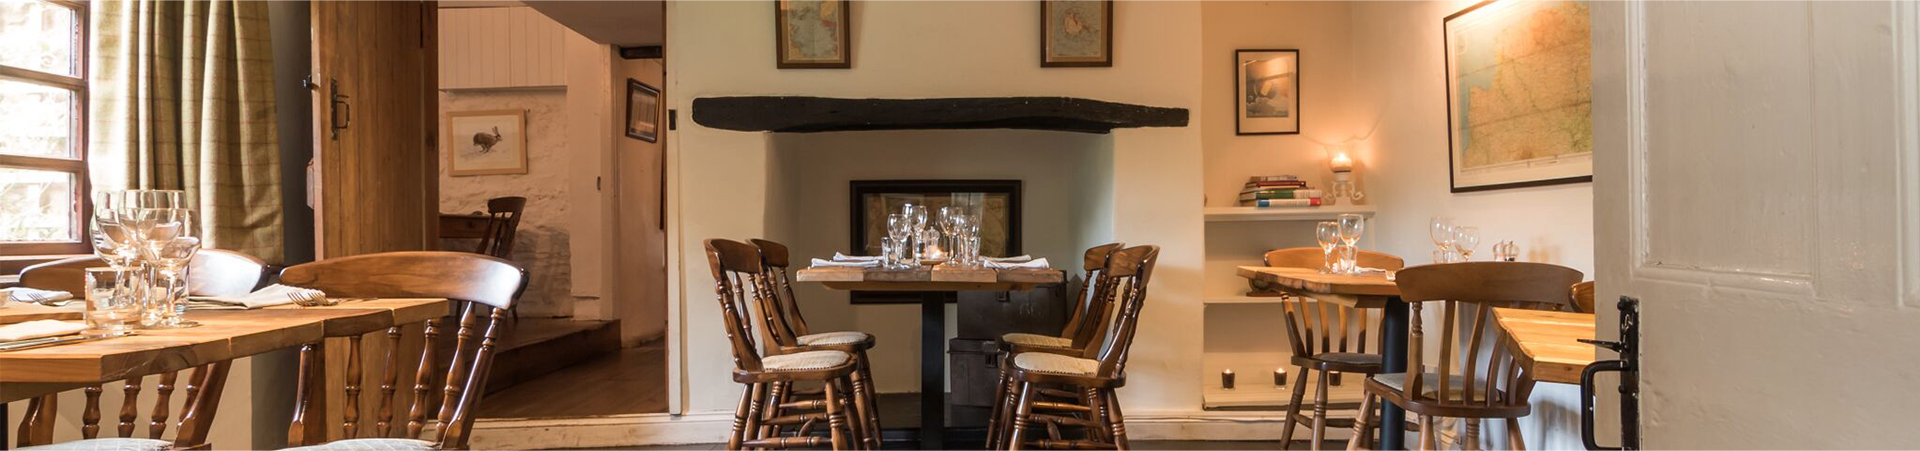 Lovely dining area with original wooden beams